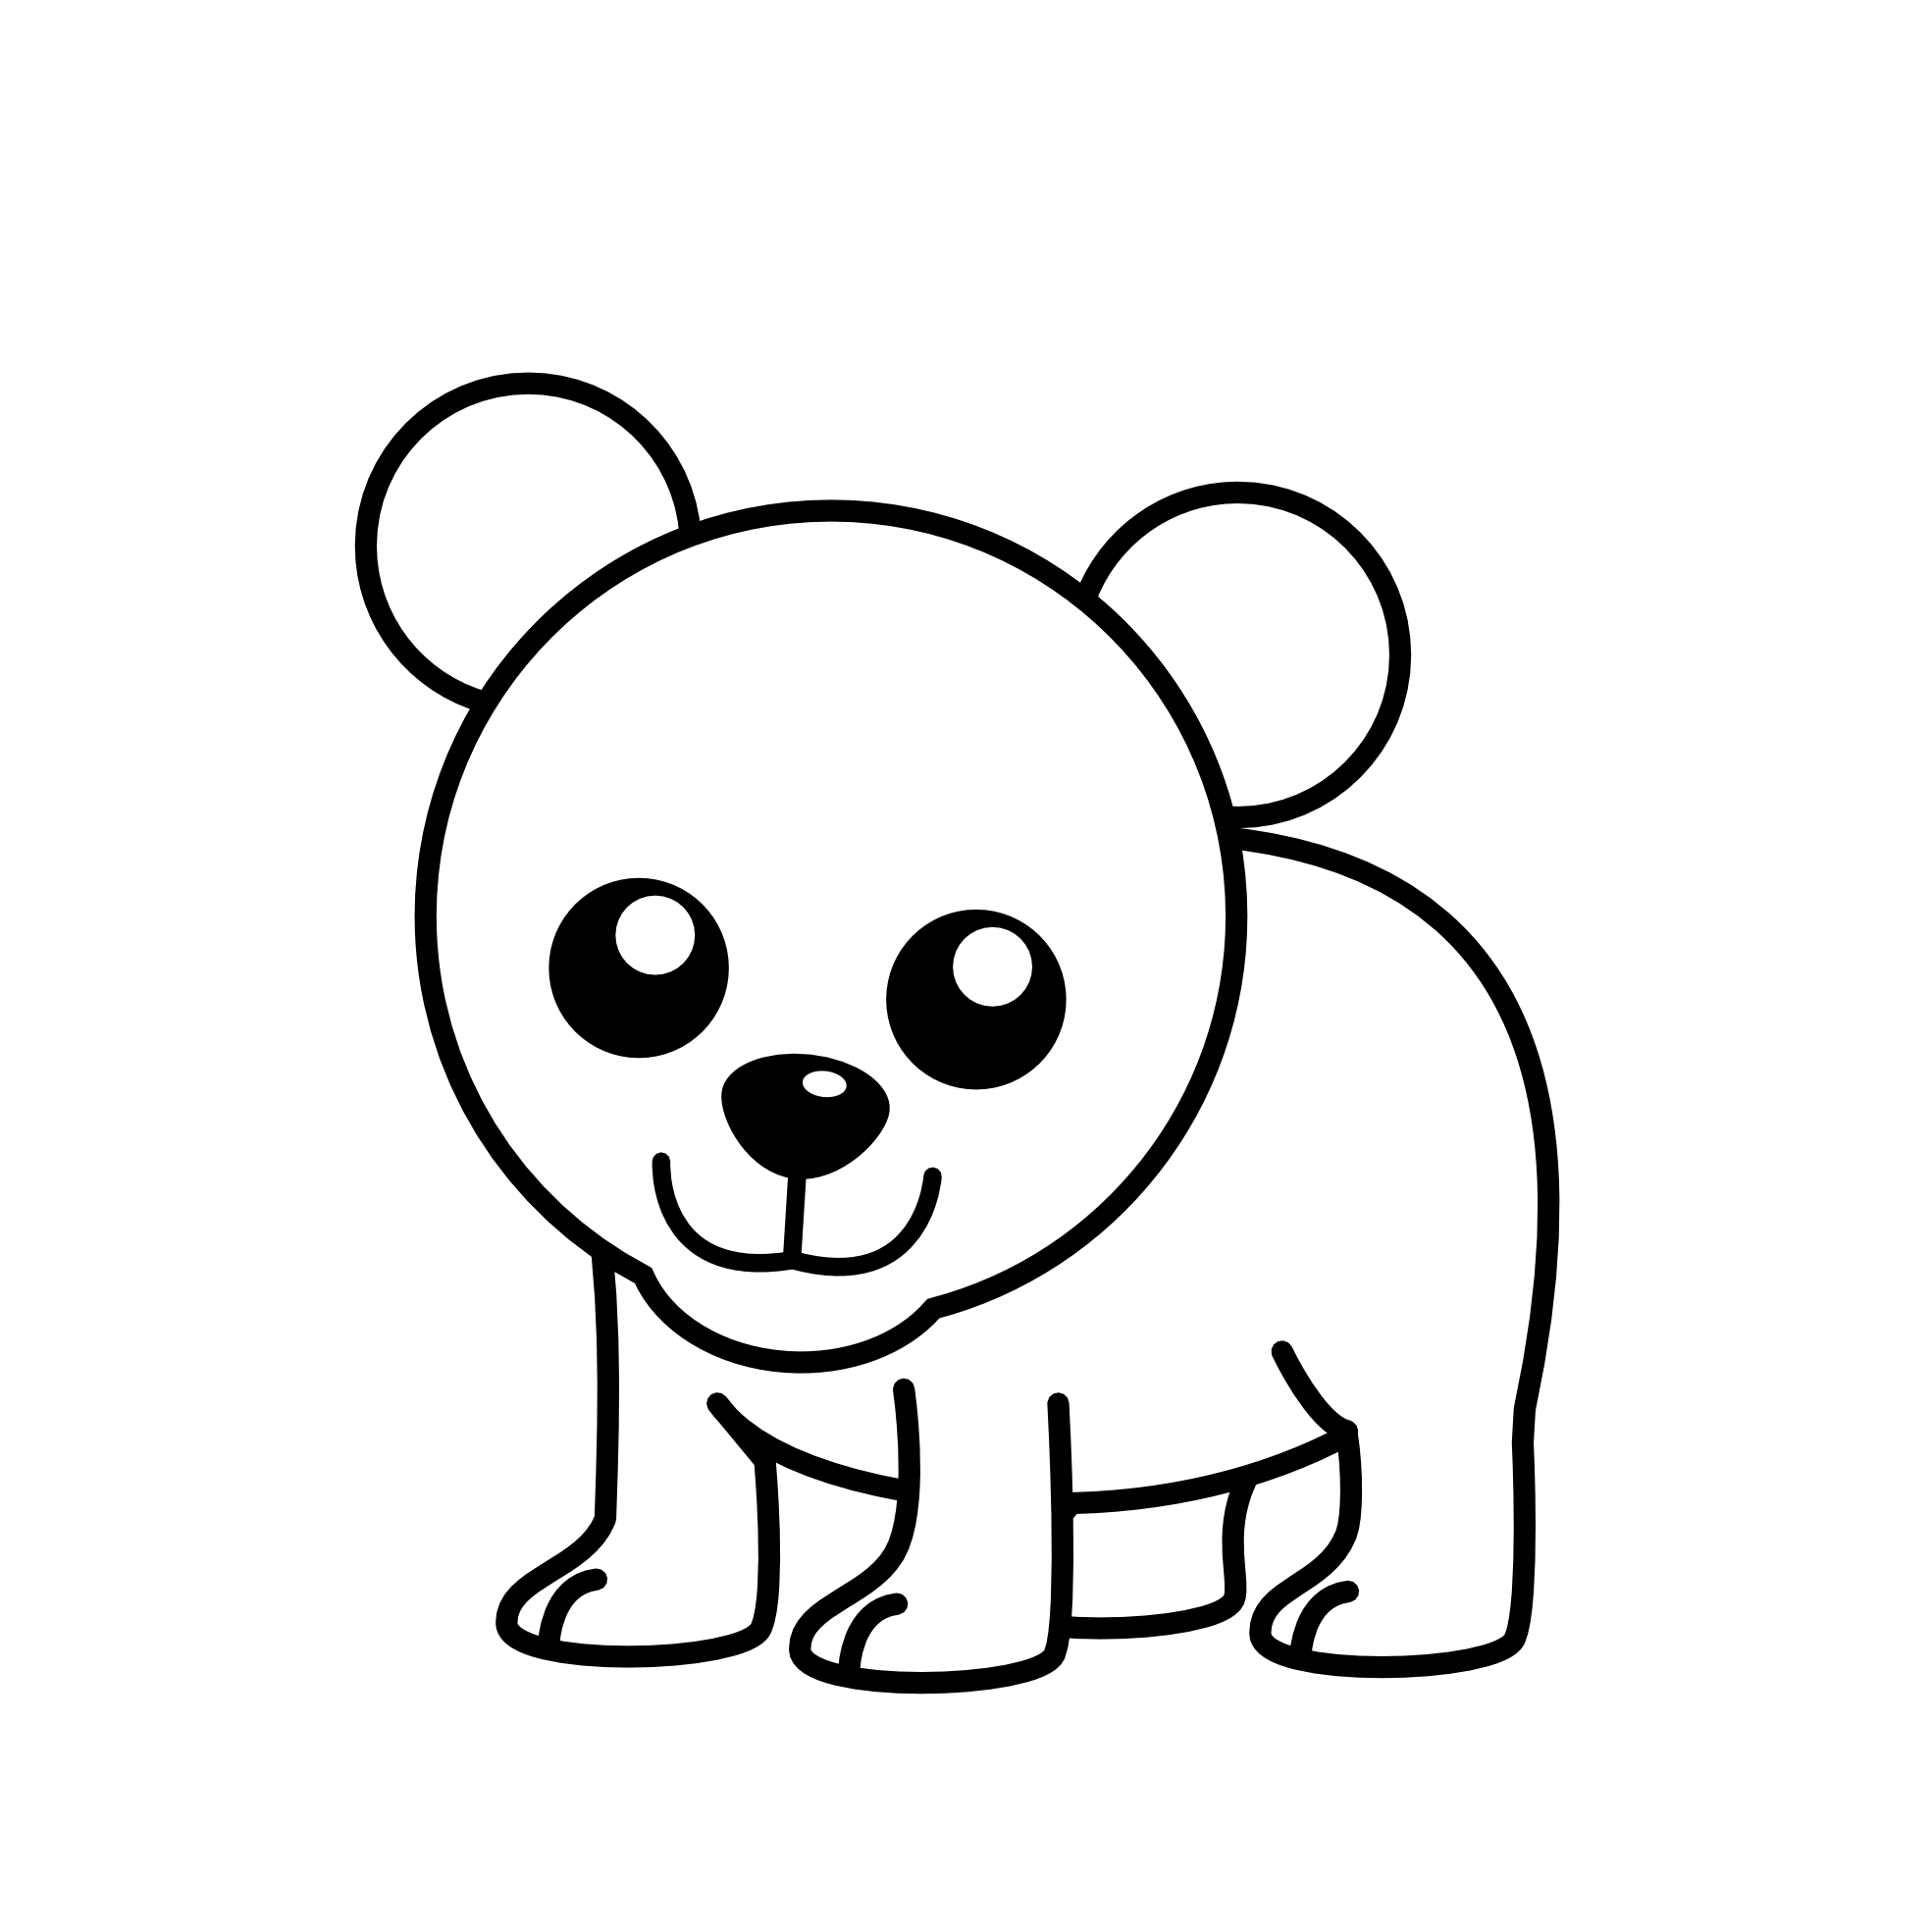 1969x1969 Teddy Bear Outline Clipart Free Clipart Images 2